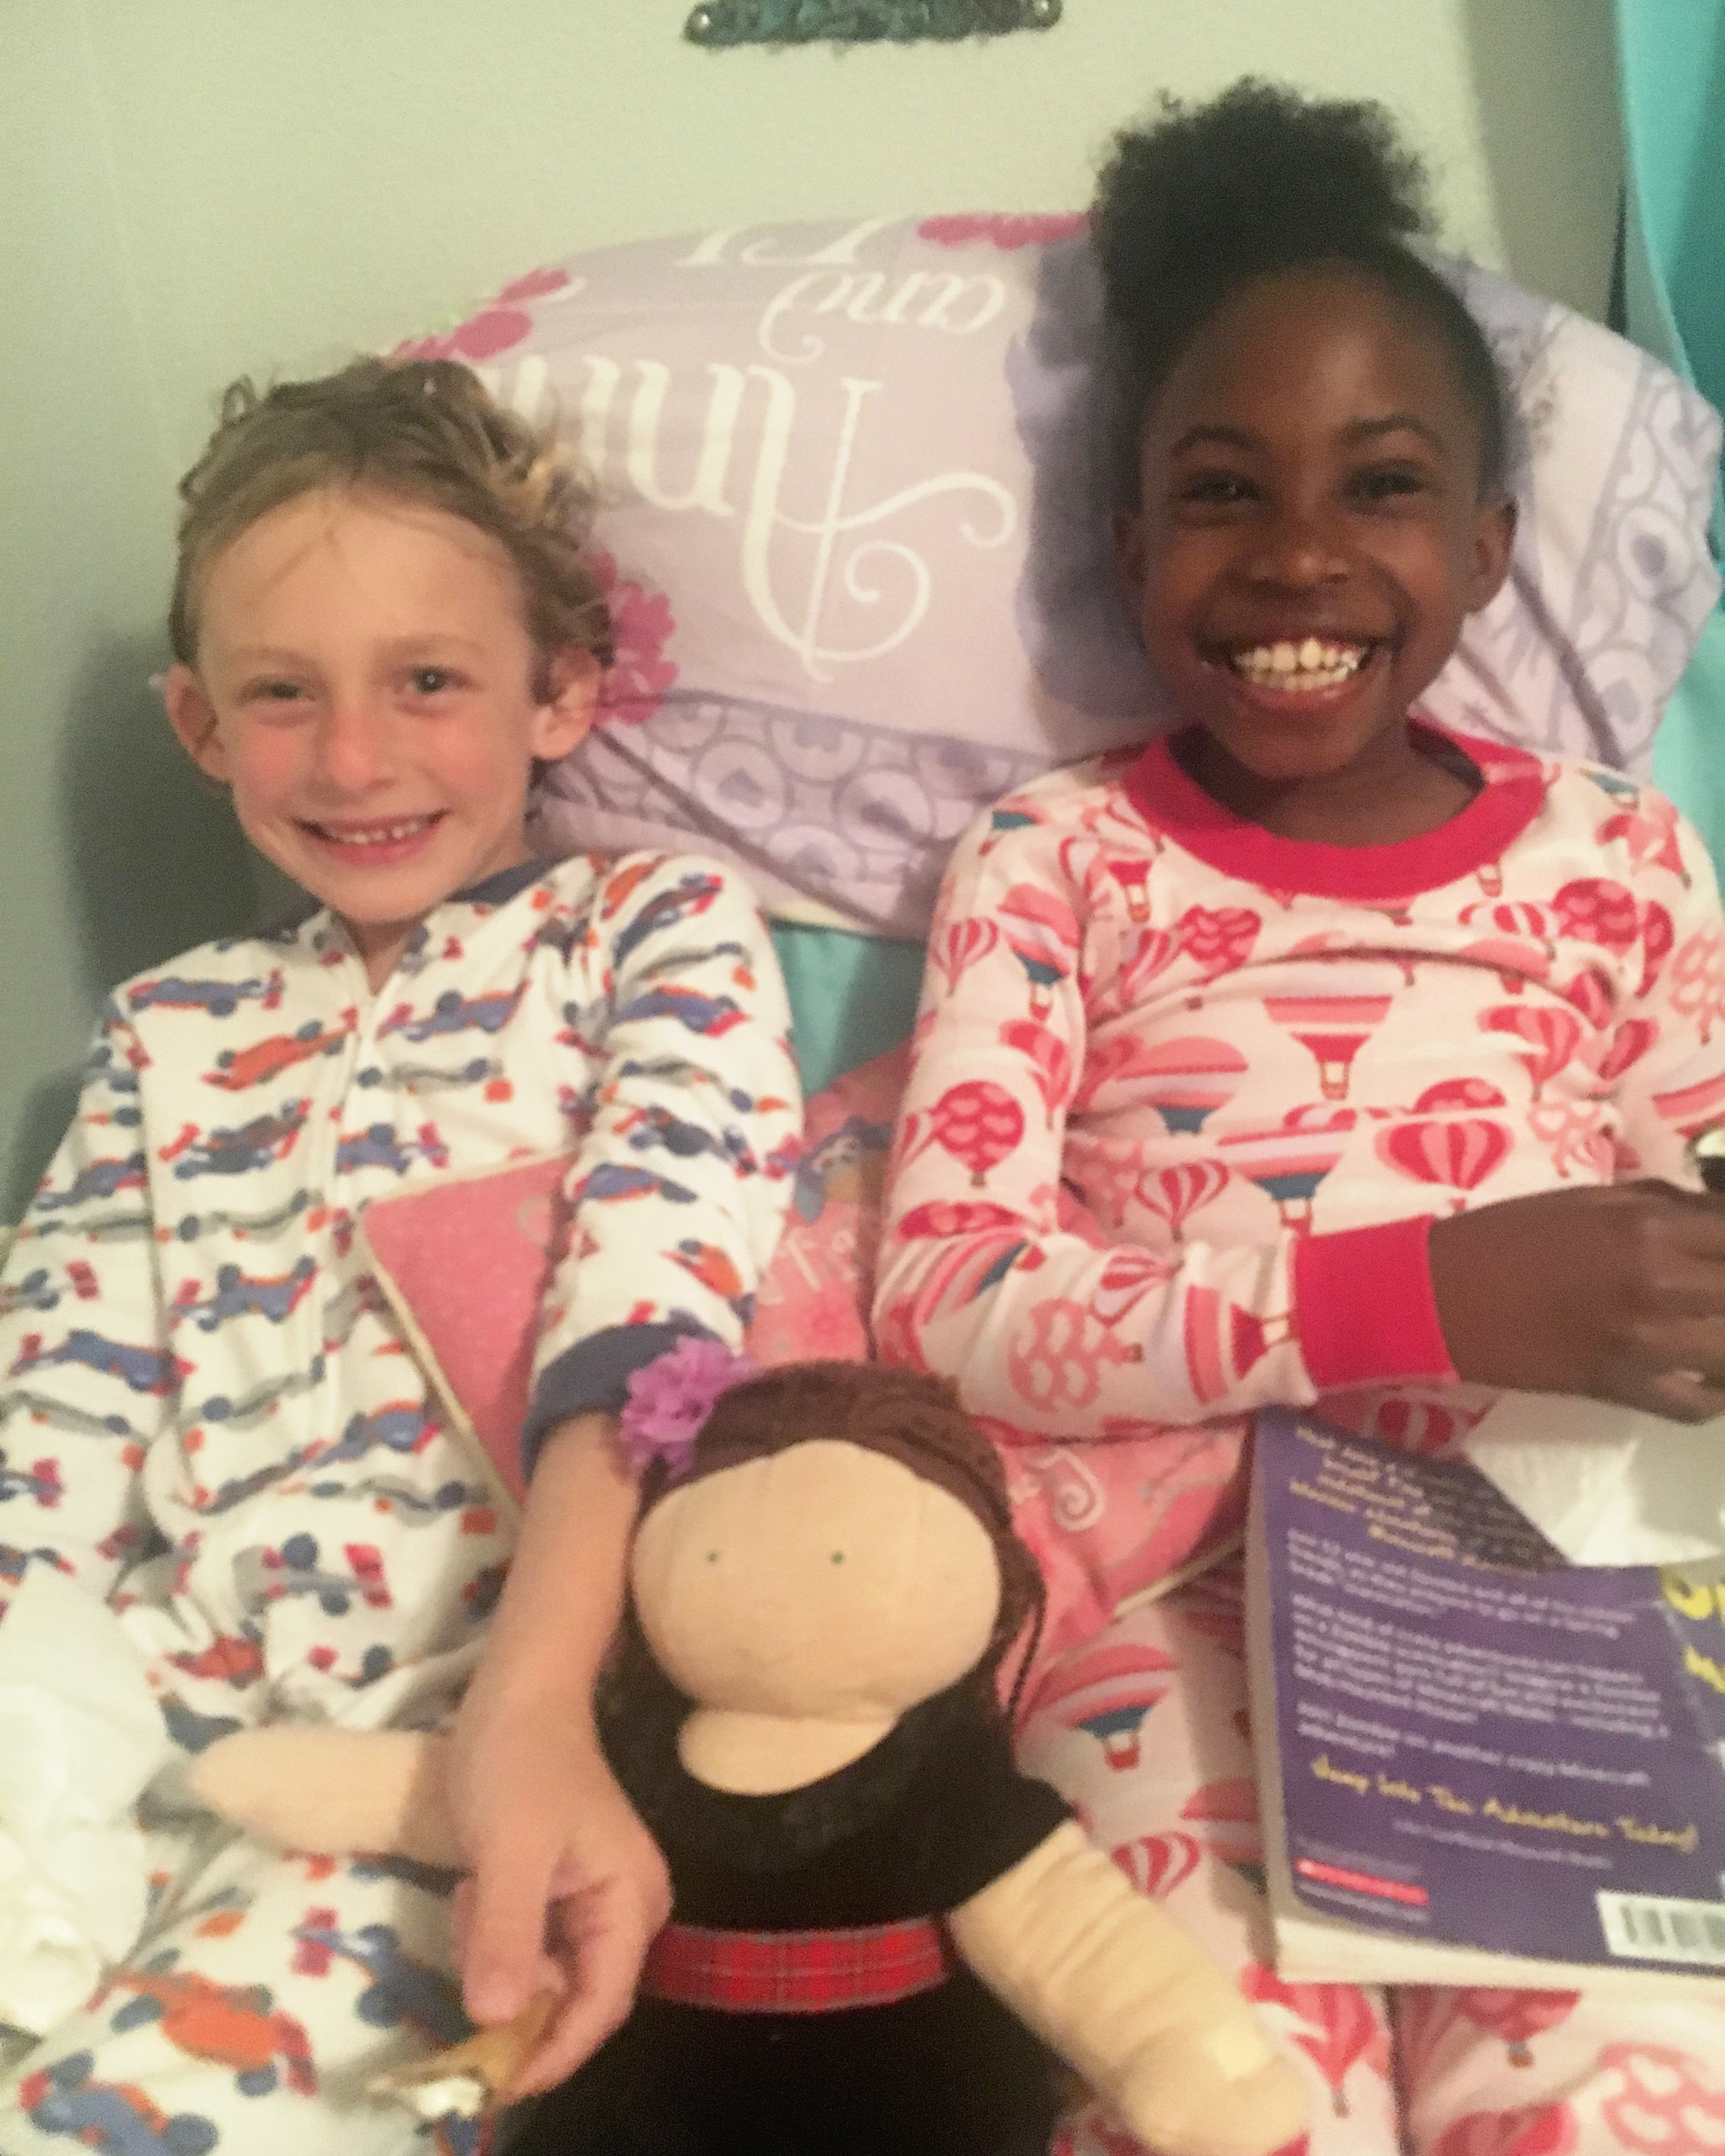 Bravery, Amelie Doll, and Ayzia on Amelie's bed for night time reading and cookies. Ayzia in Amelie's pajamas.